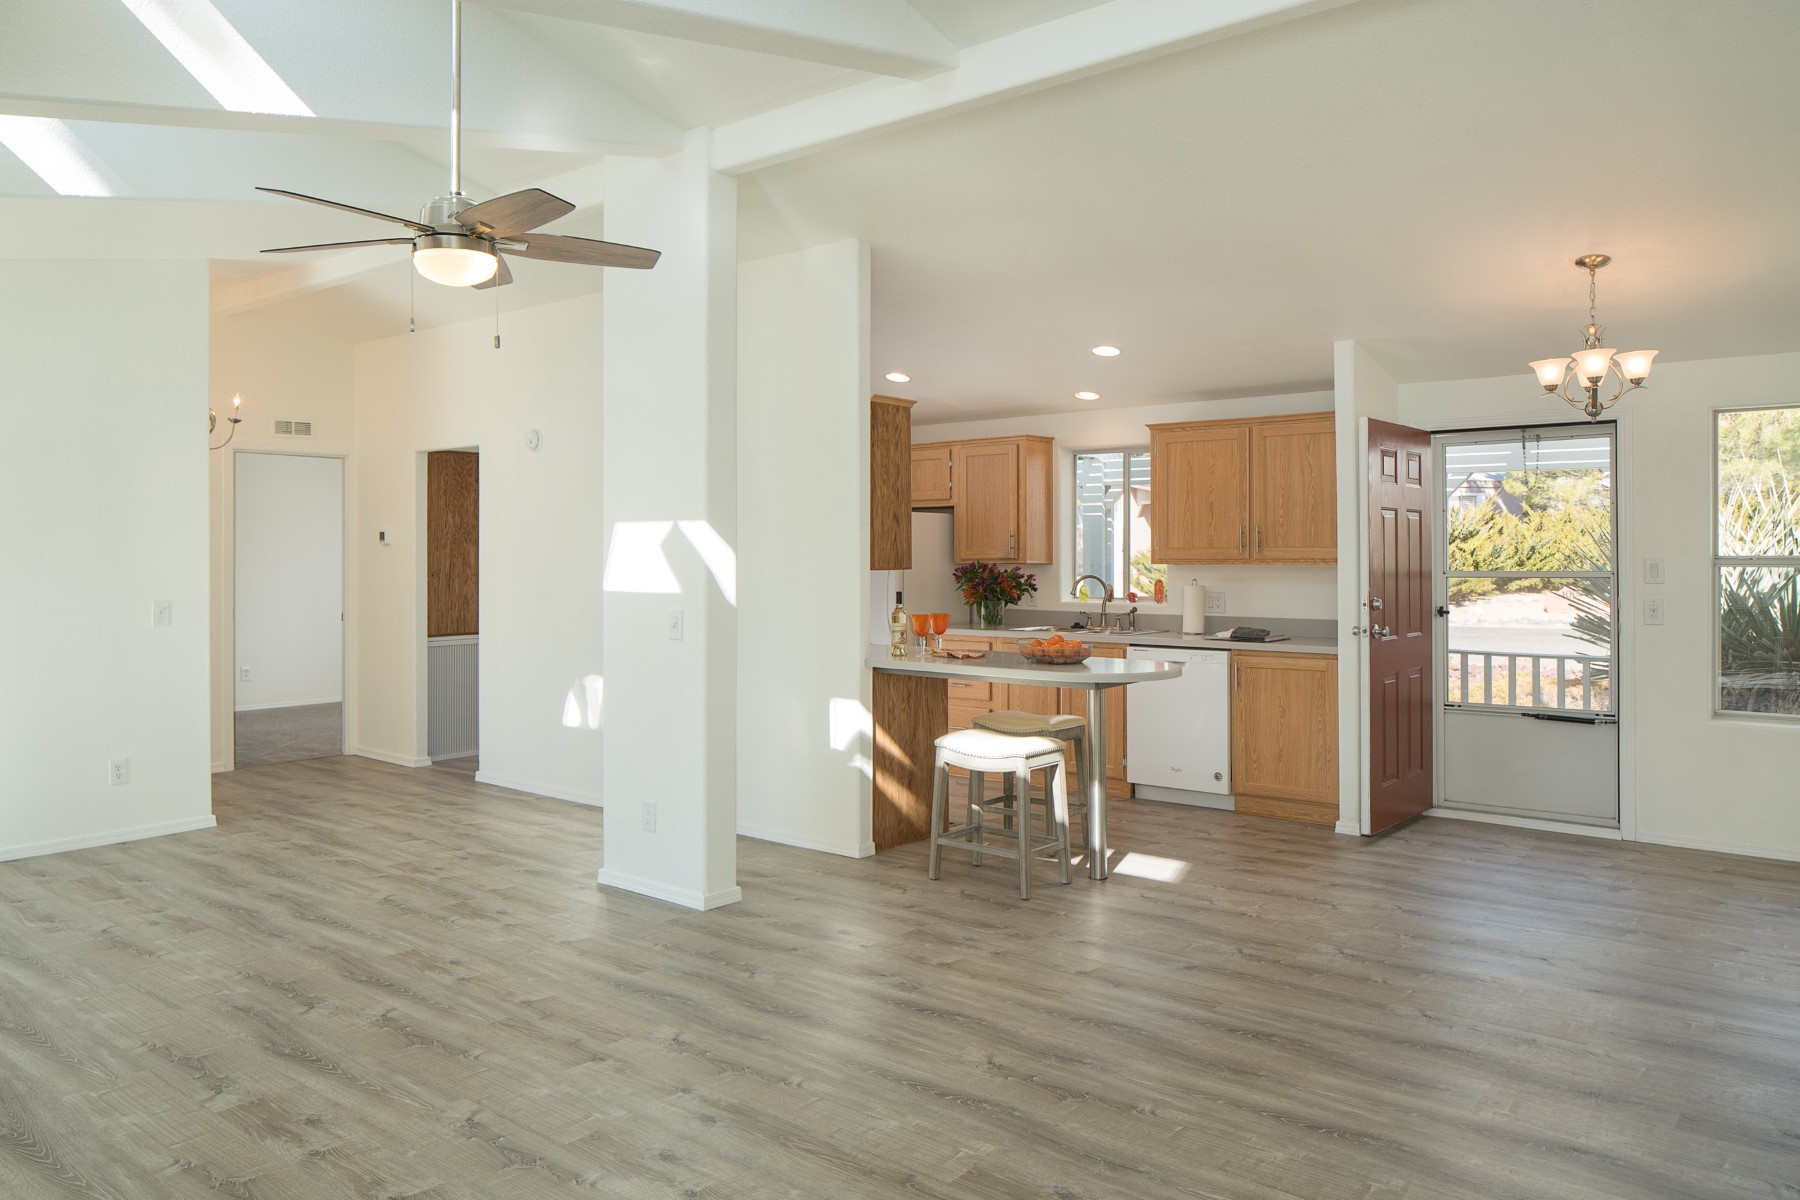 Single Family Home for Sale at Completely Renovated Home 95 Yellow Sky Way, Sedona, Arizona, 86336 United States